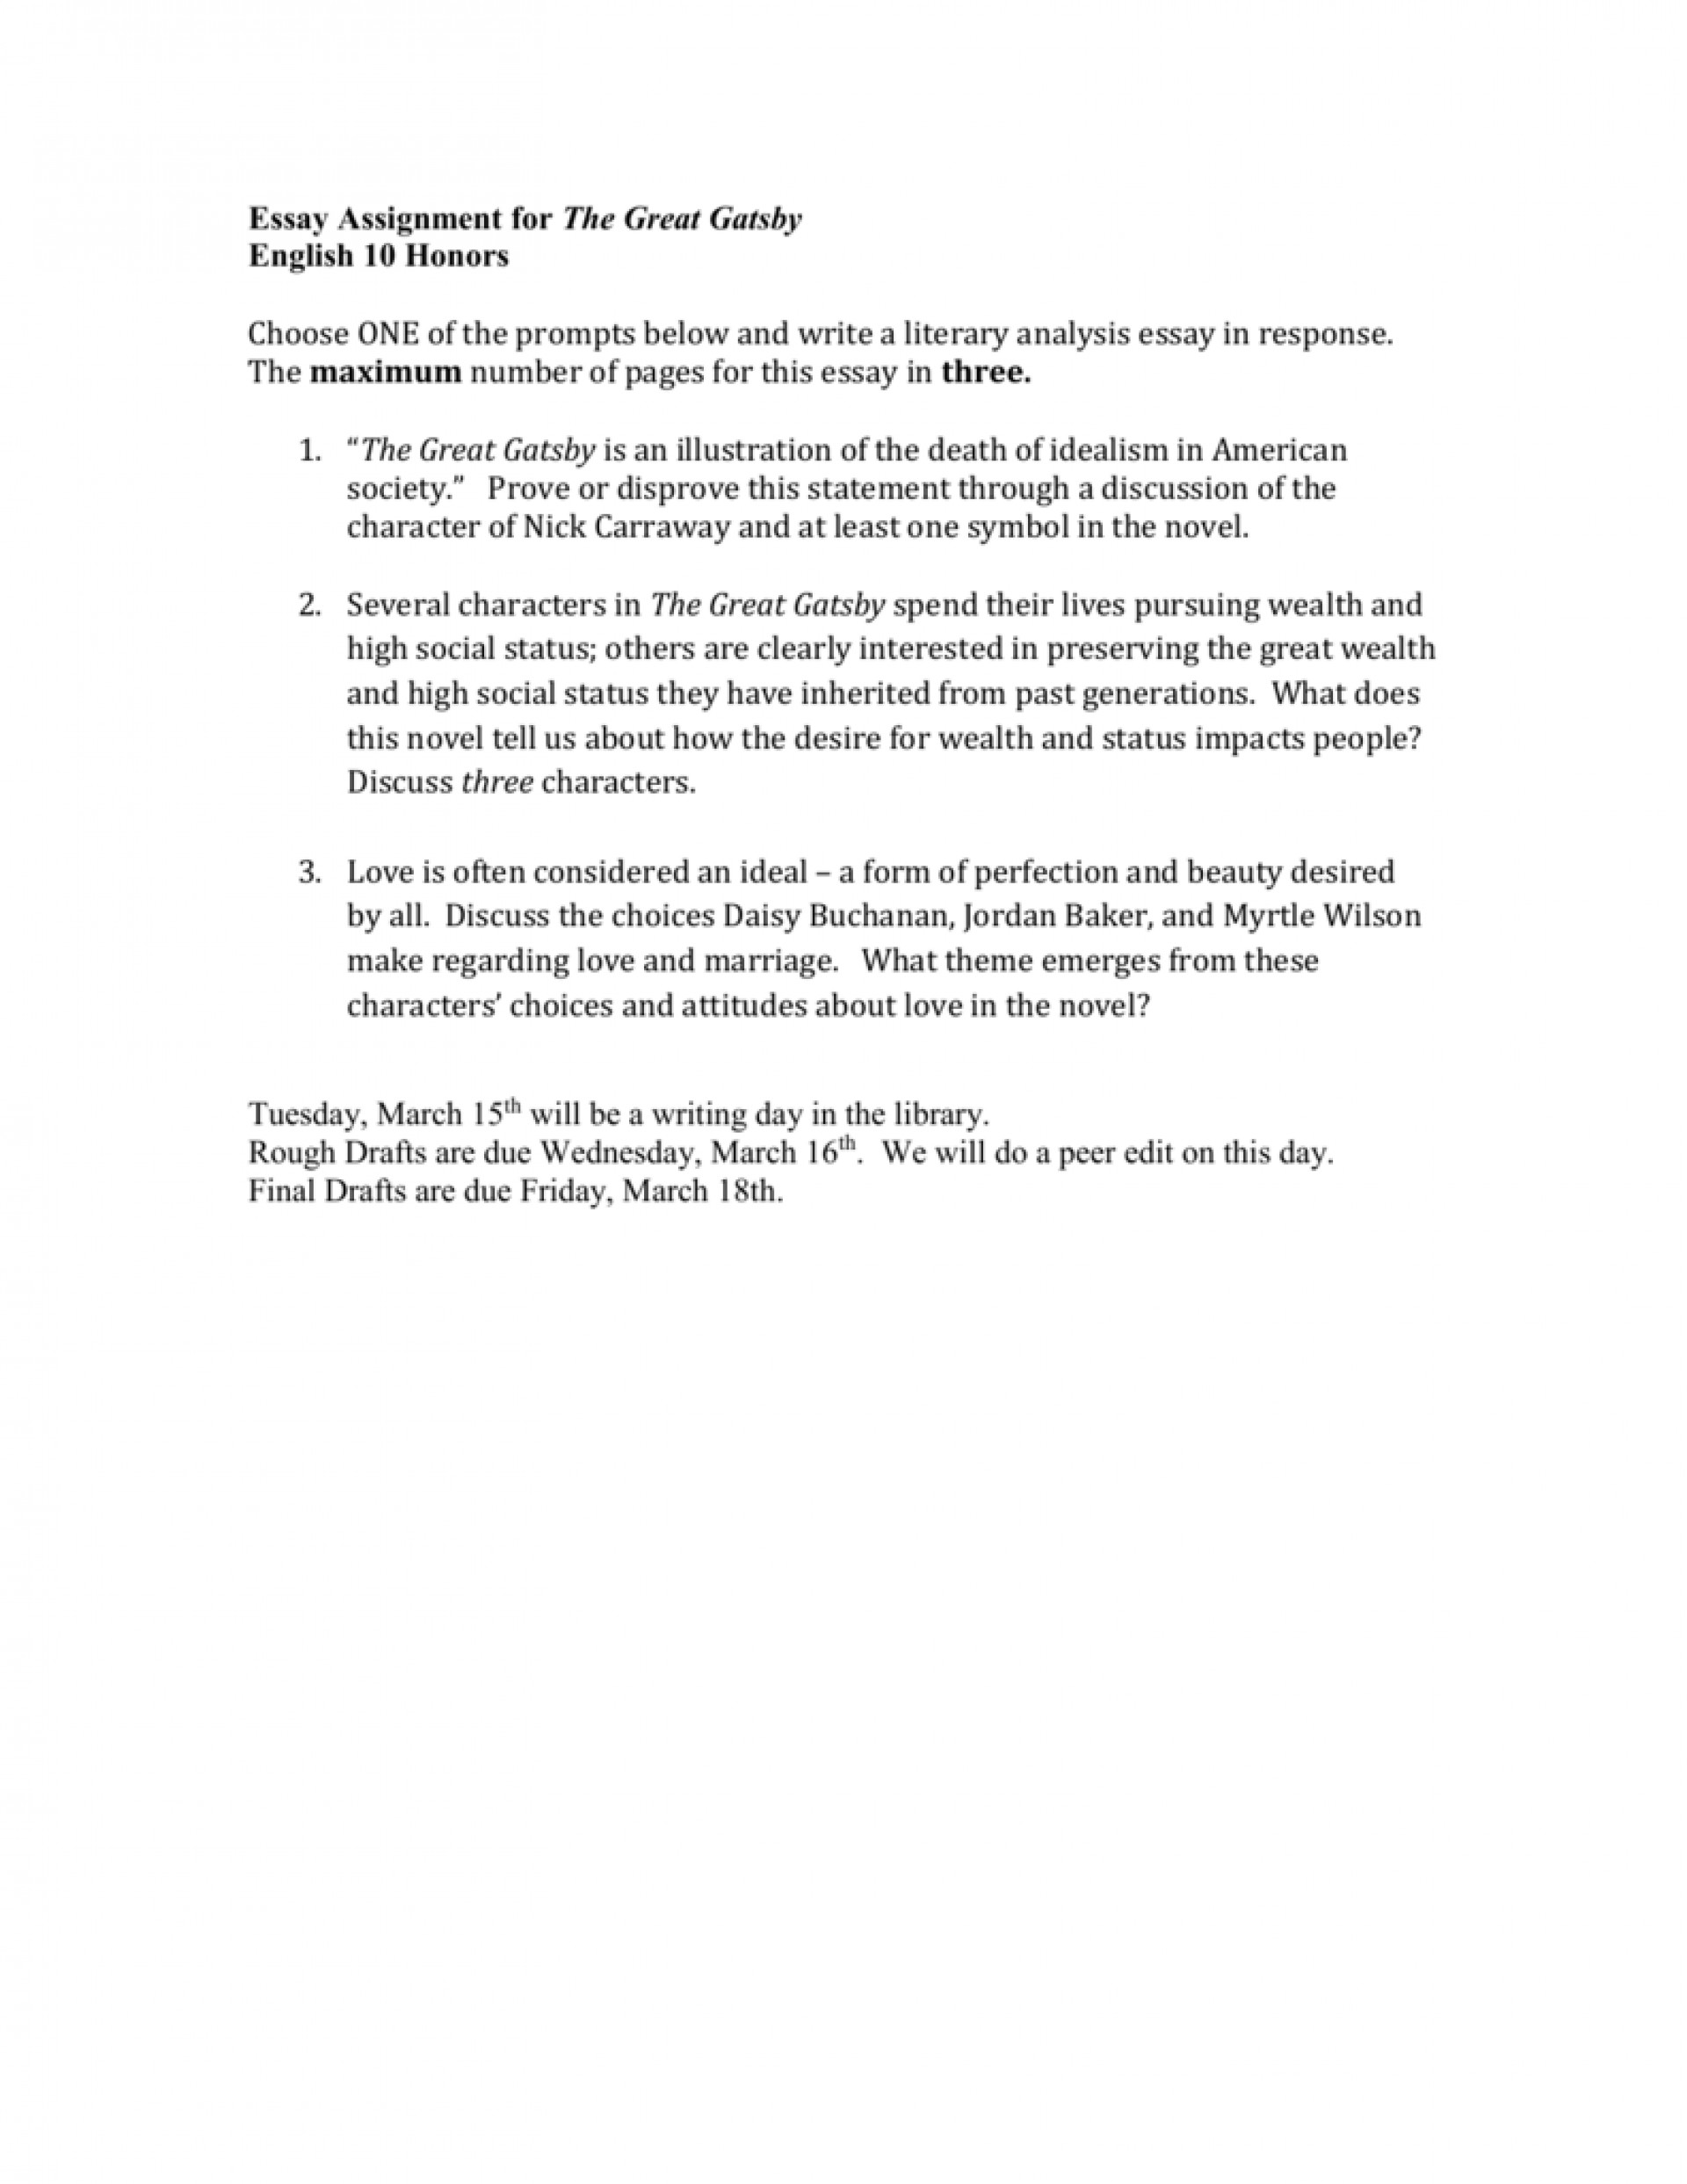 007 Gatsby Essay Example 008043914 1 Fascinating Higher English Great Plans Thesis Conclusion 1920